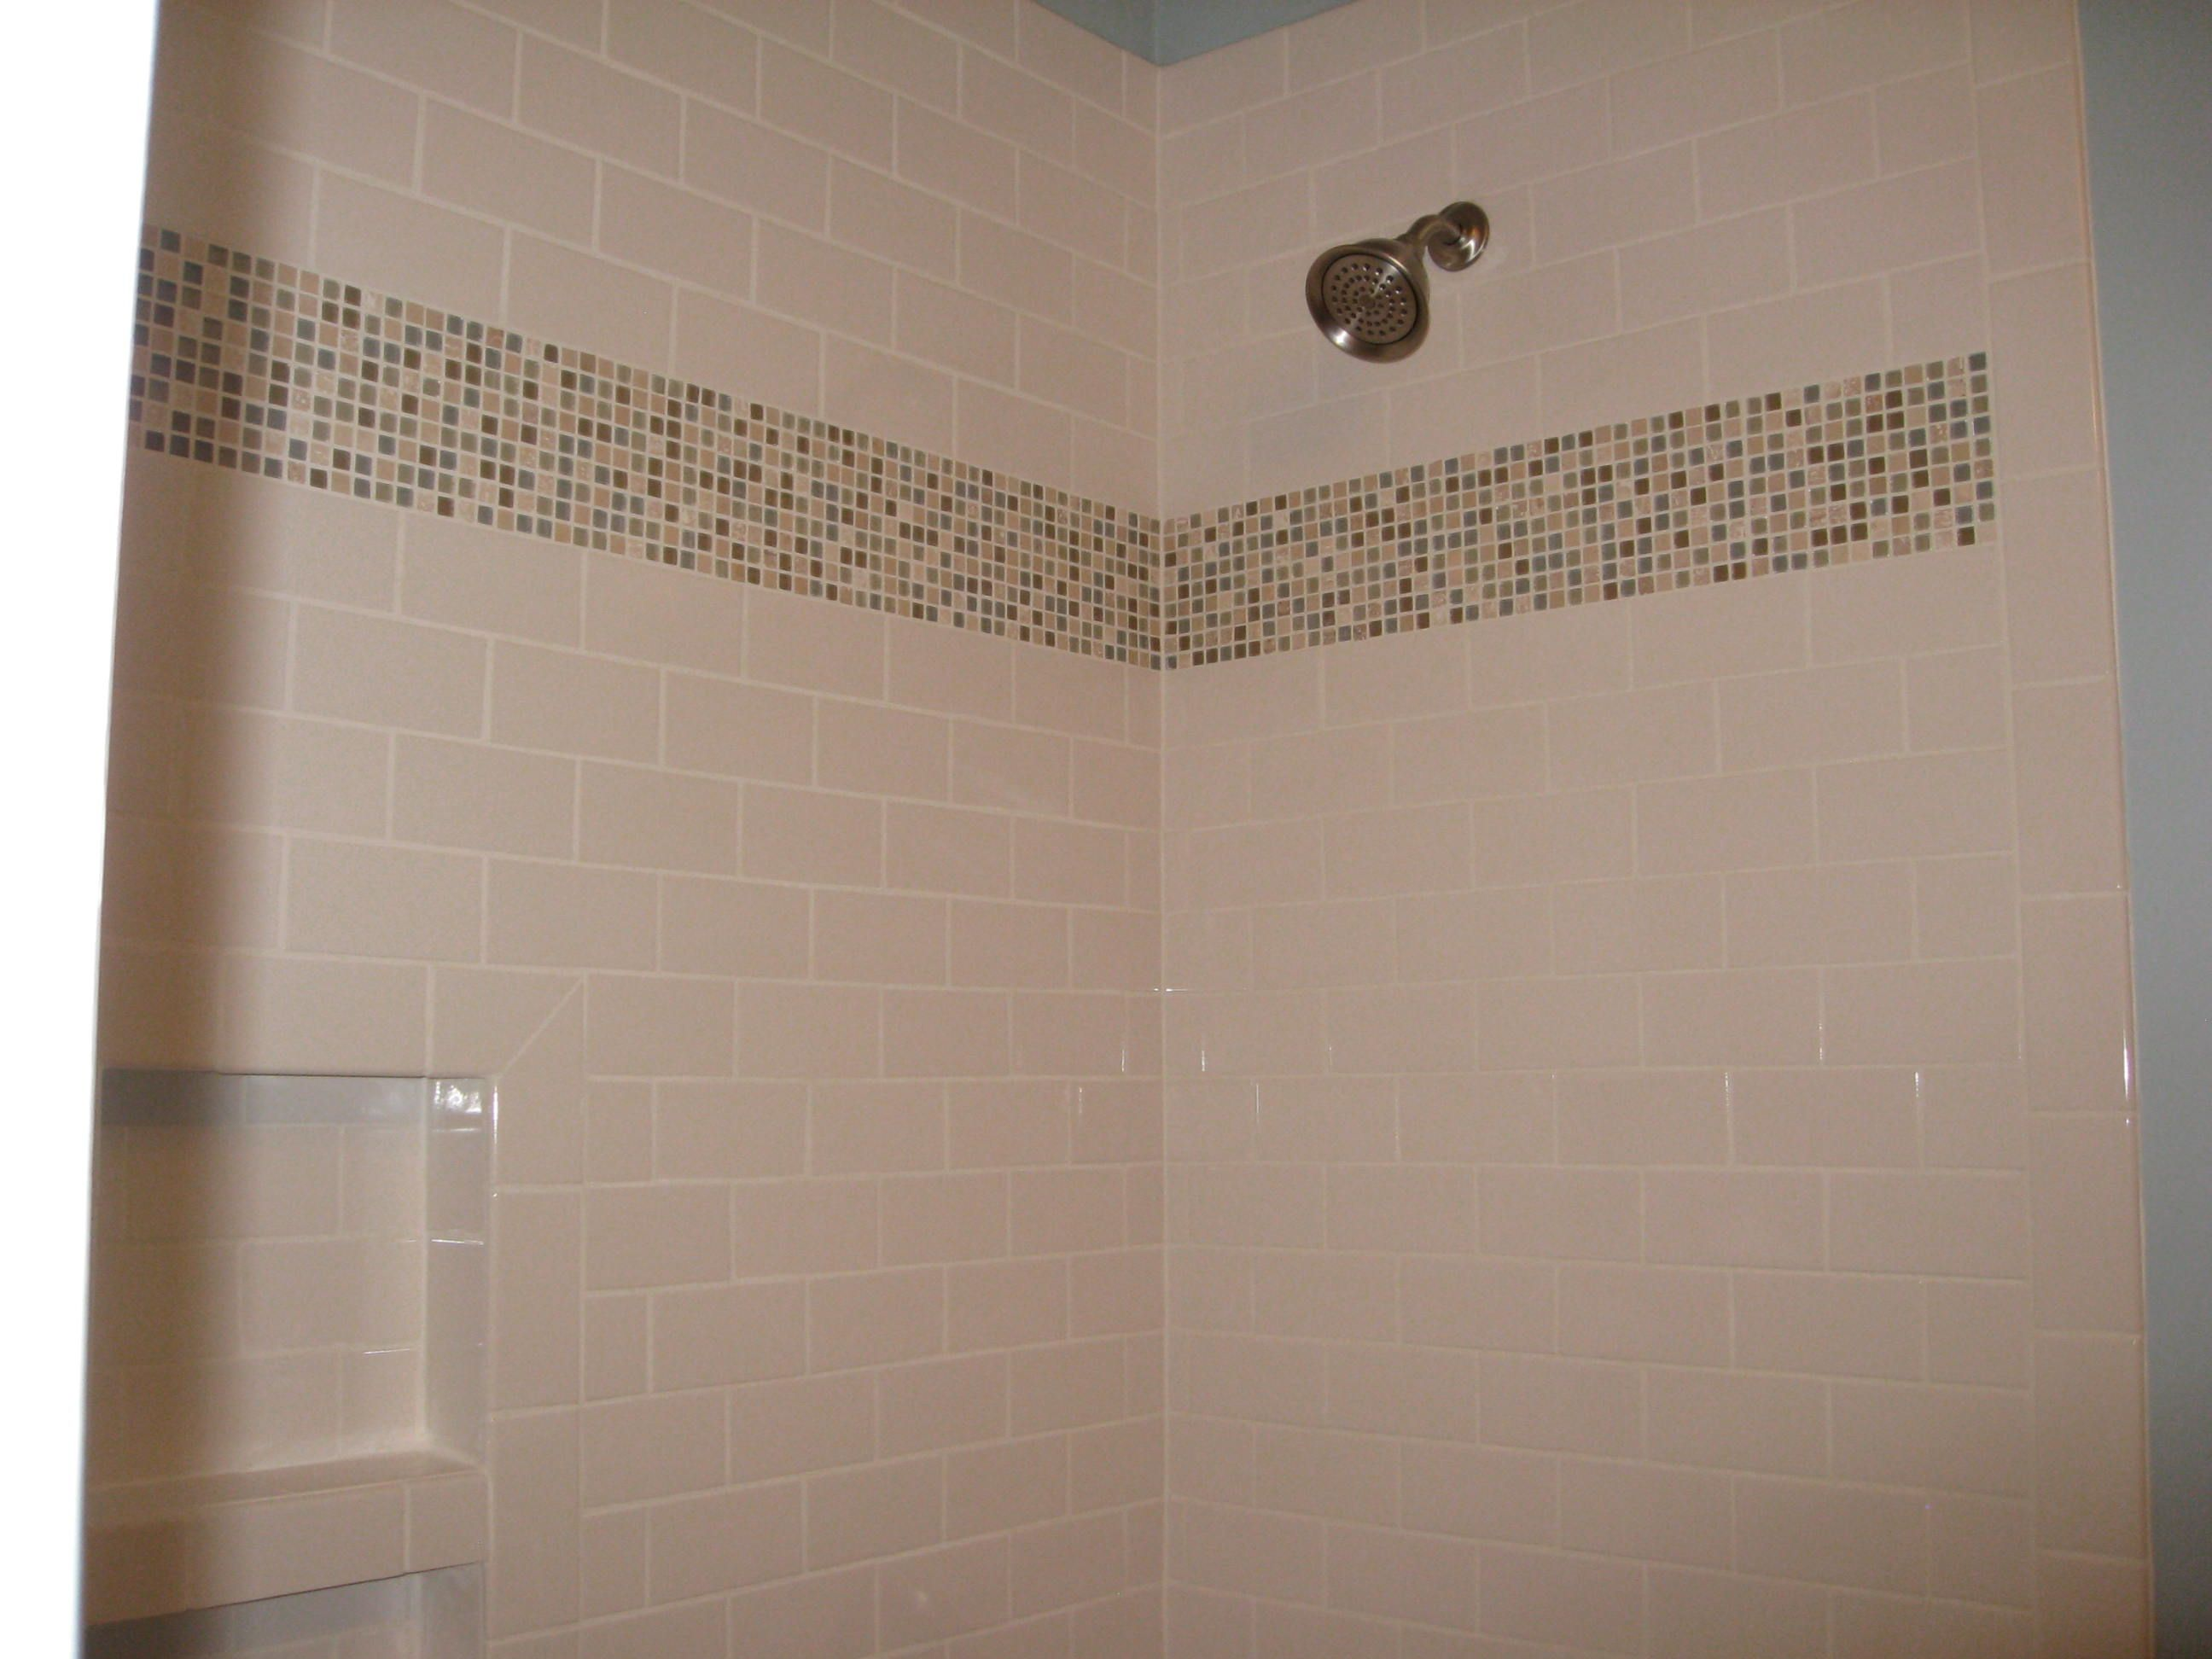 Brown and white tile bathrooms guest bathroom we re tiled the mosaic placement for blue bathroom white tiles crystalline blue mosaic tiles rows and white bullnose tiles dailygadgetfo Choice Image